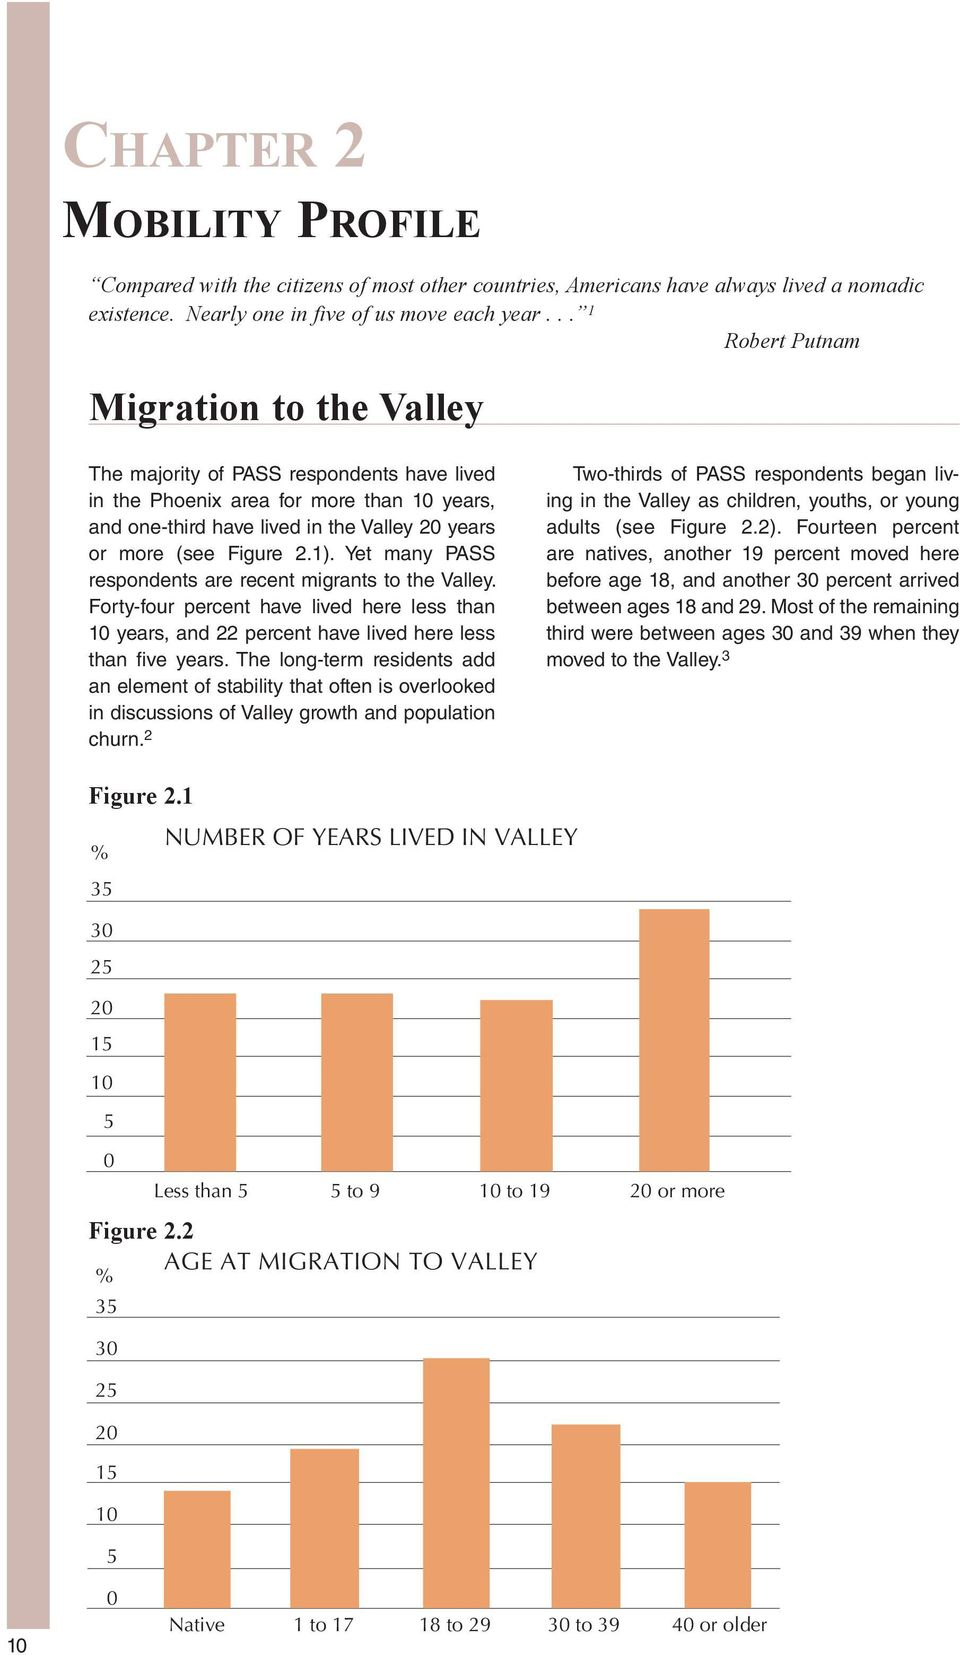 1). Yet many PASS respondents are recent migrants to the Valley. Forty-four percent have lived here less than 10 years, and 22 percent have lived here less than five years.